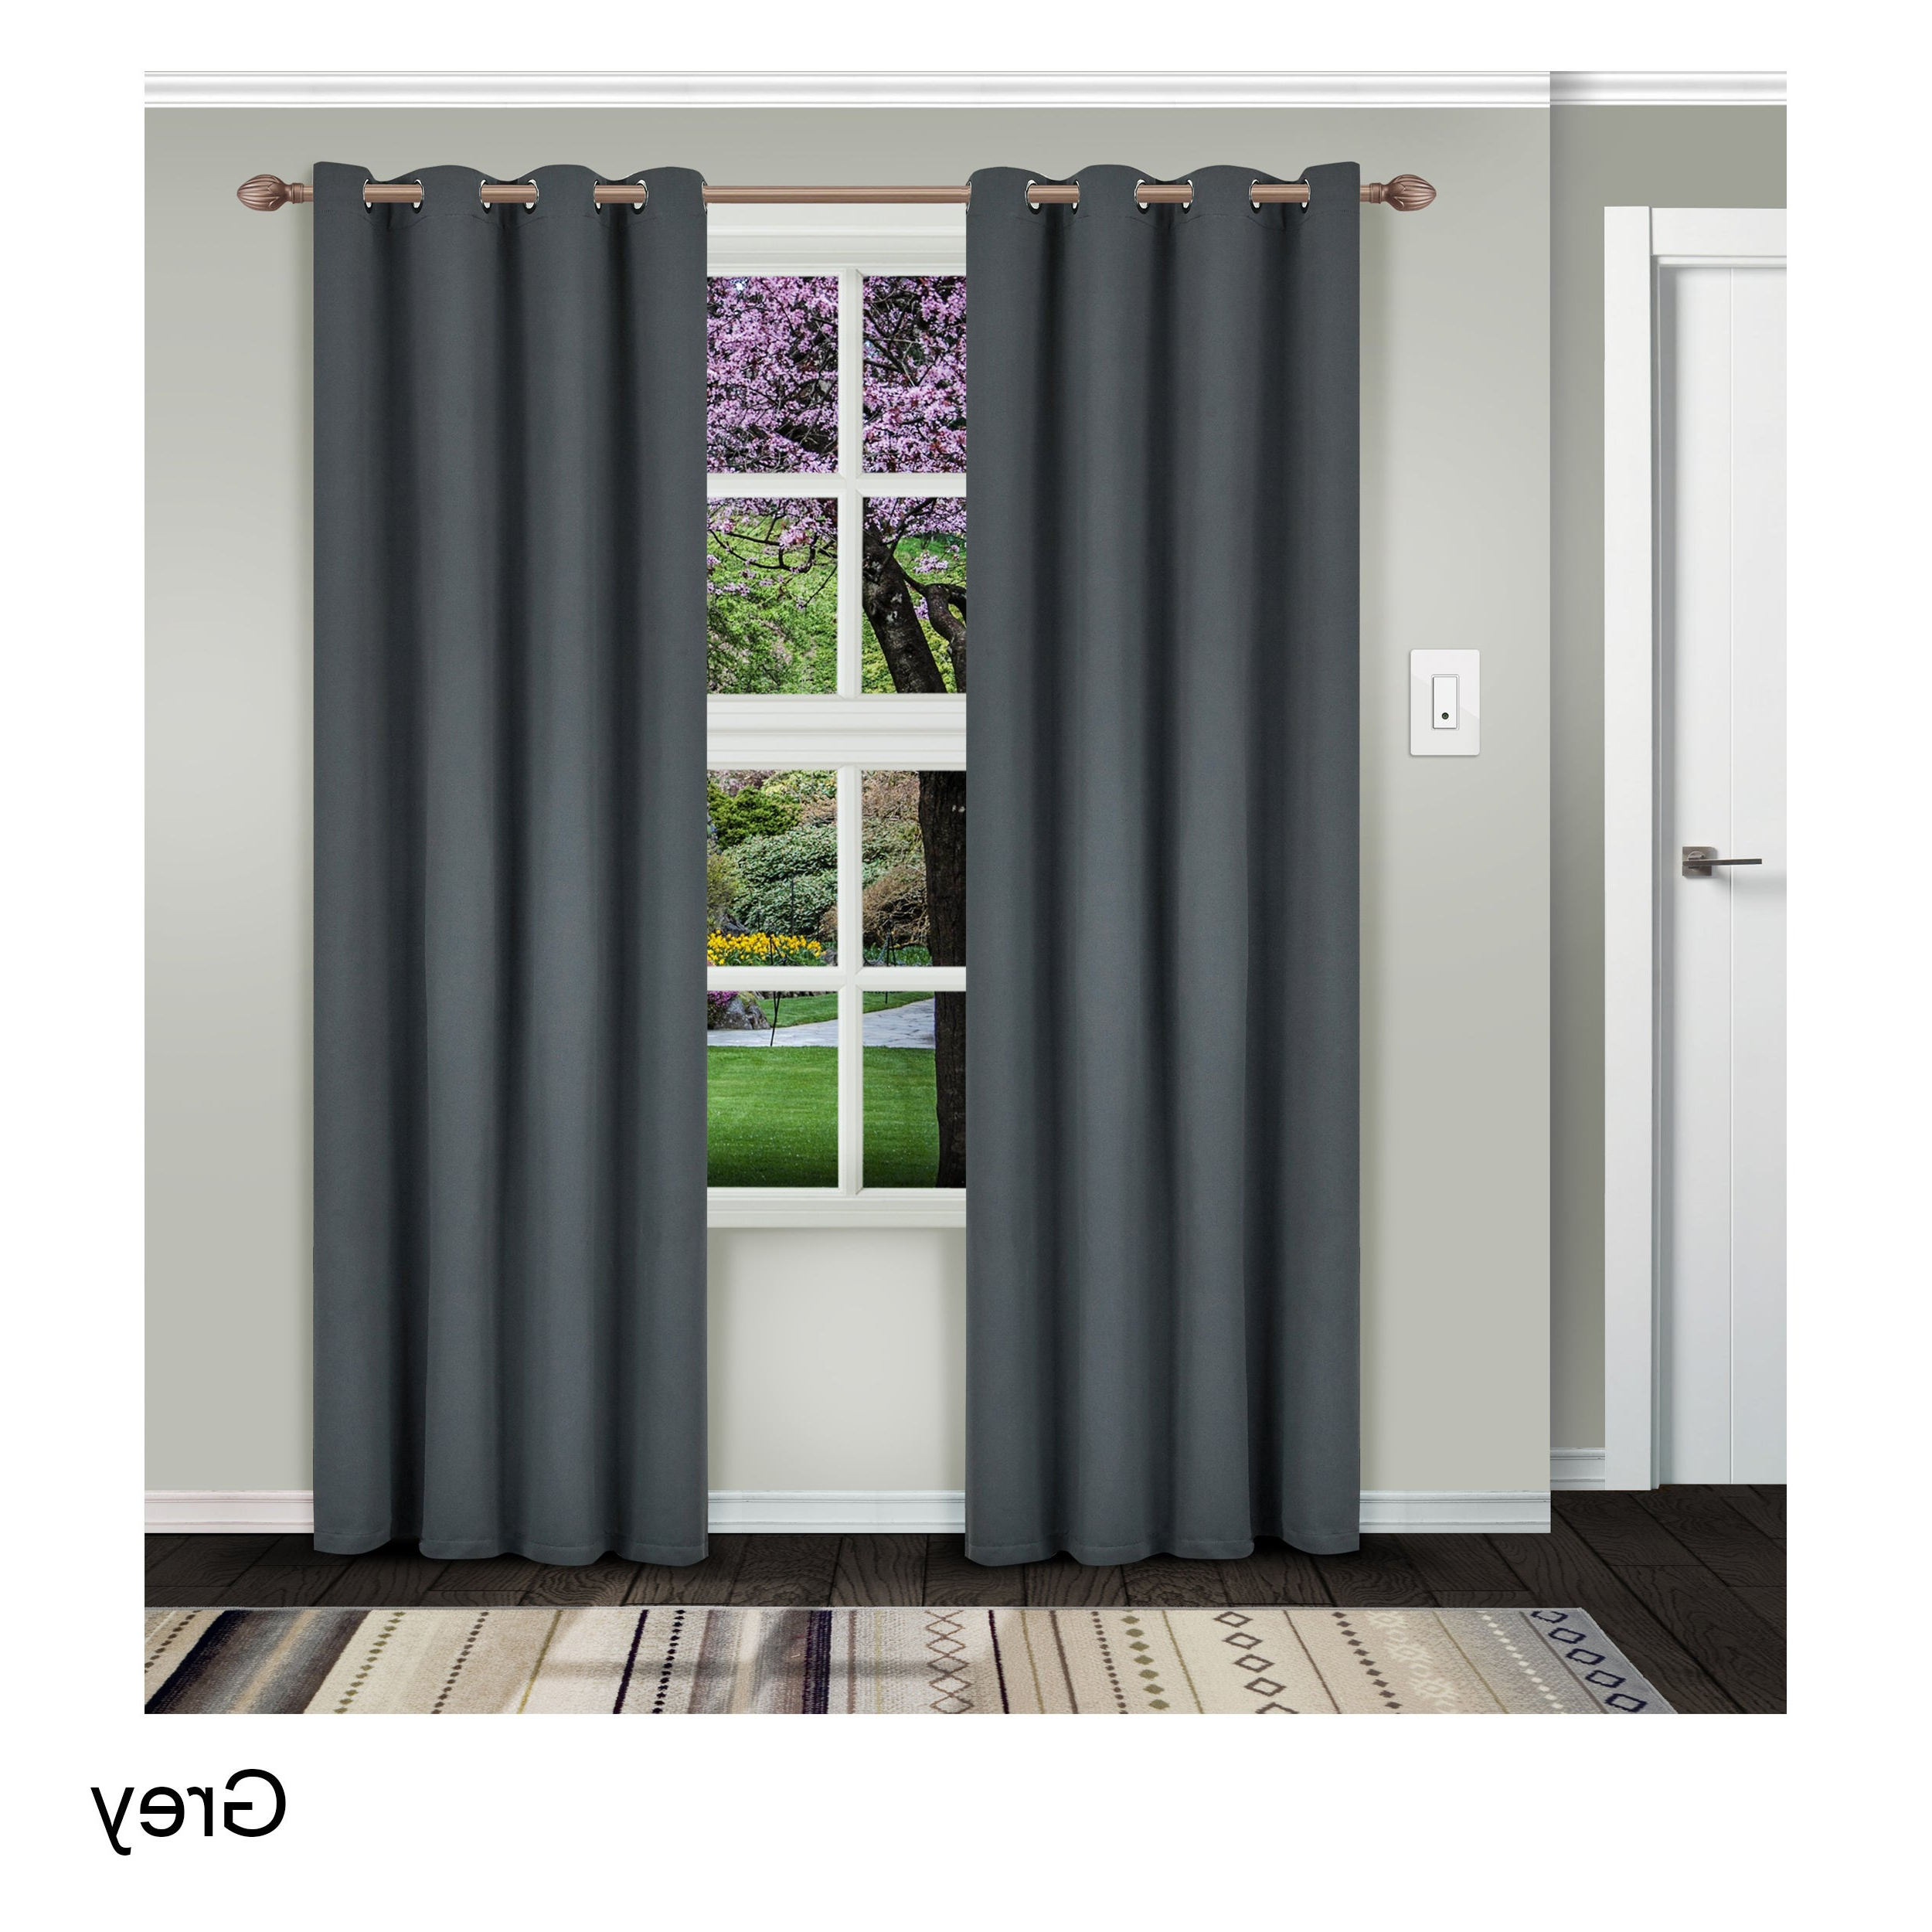 Superior Solid Insulated Thermal Blackout Grommet Curtain Panel Pair Throughout Well Known Solid Grommet Top Curtain Panel Pairs (View 15 of 20)